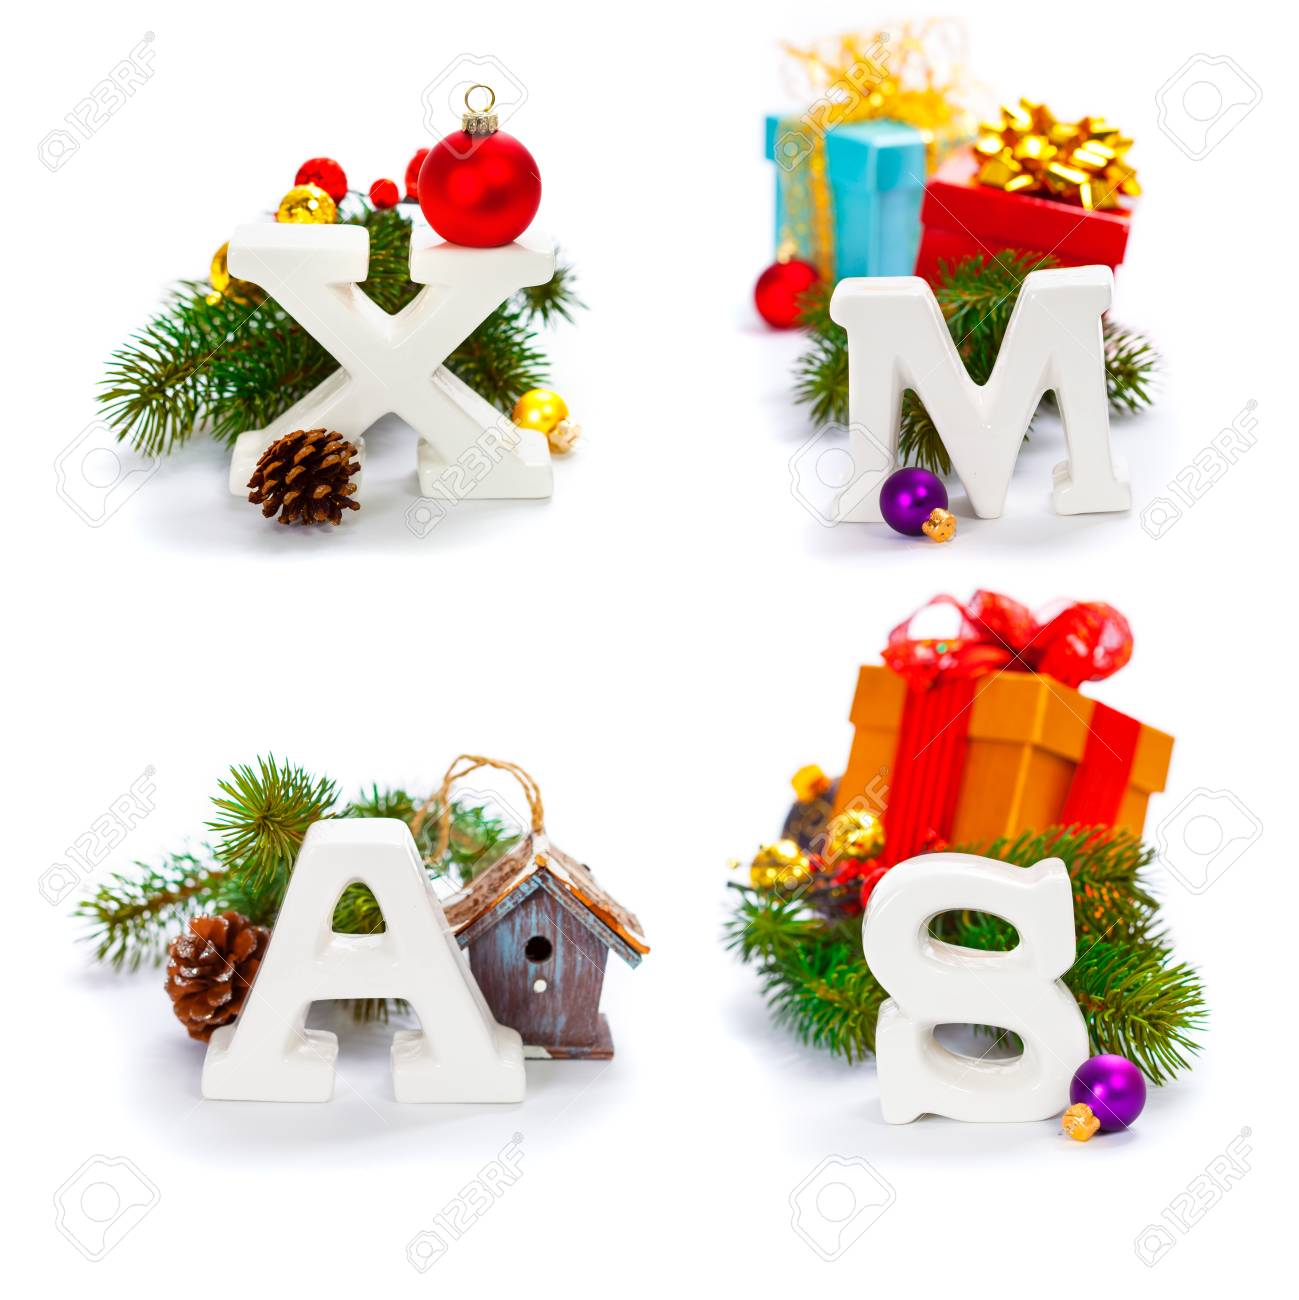 Christmas Ornament Letters